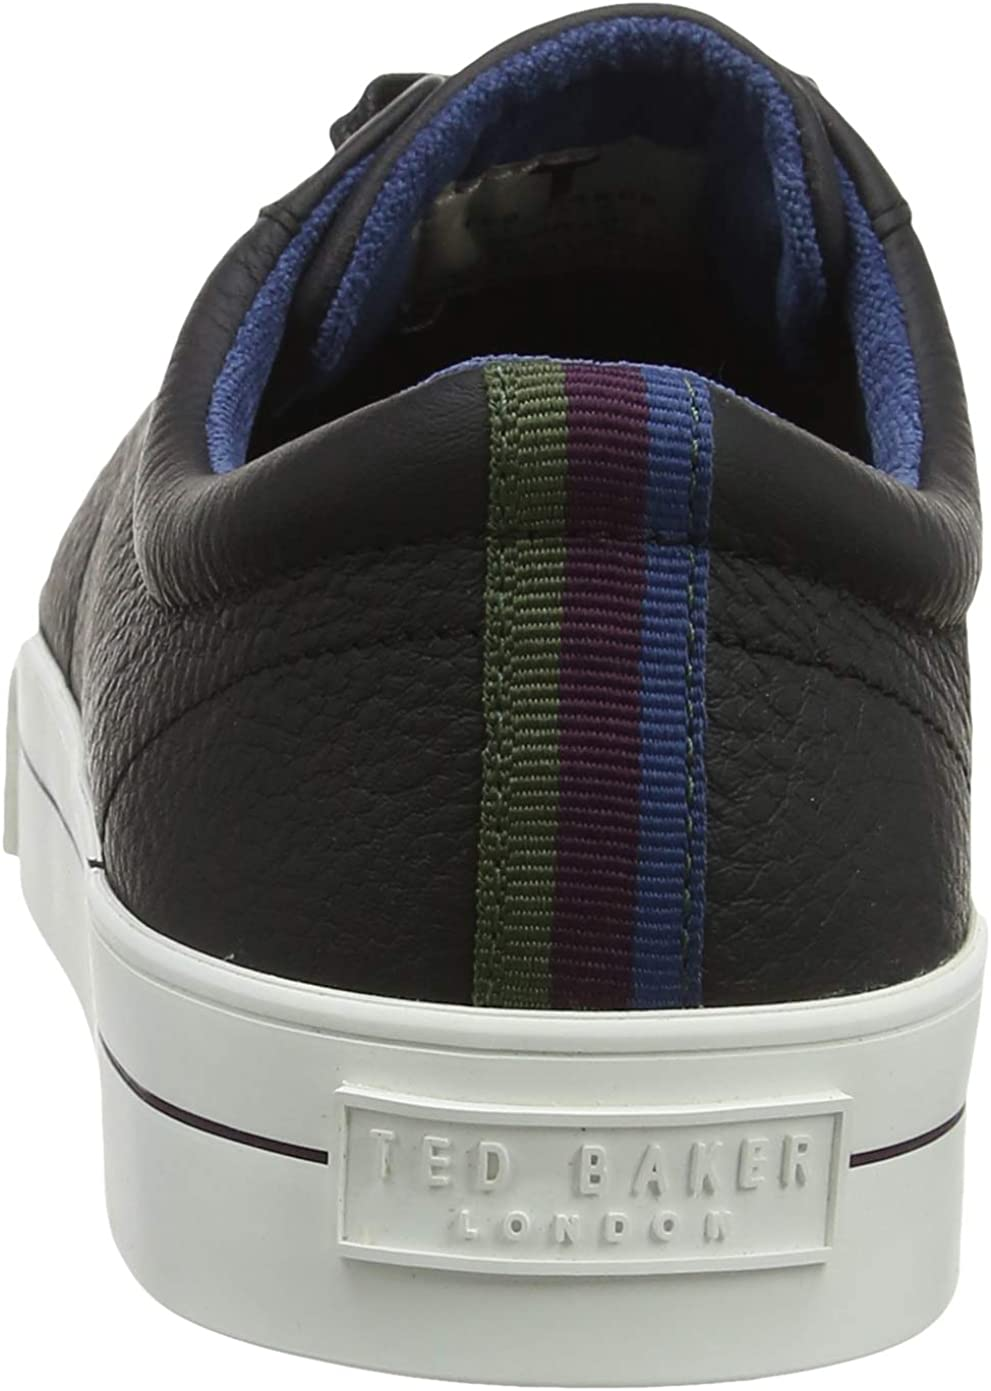 Ted Baker Mens Shoes Slippers Sneaker Pumps Etc